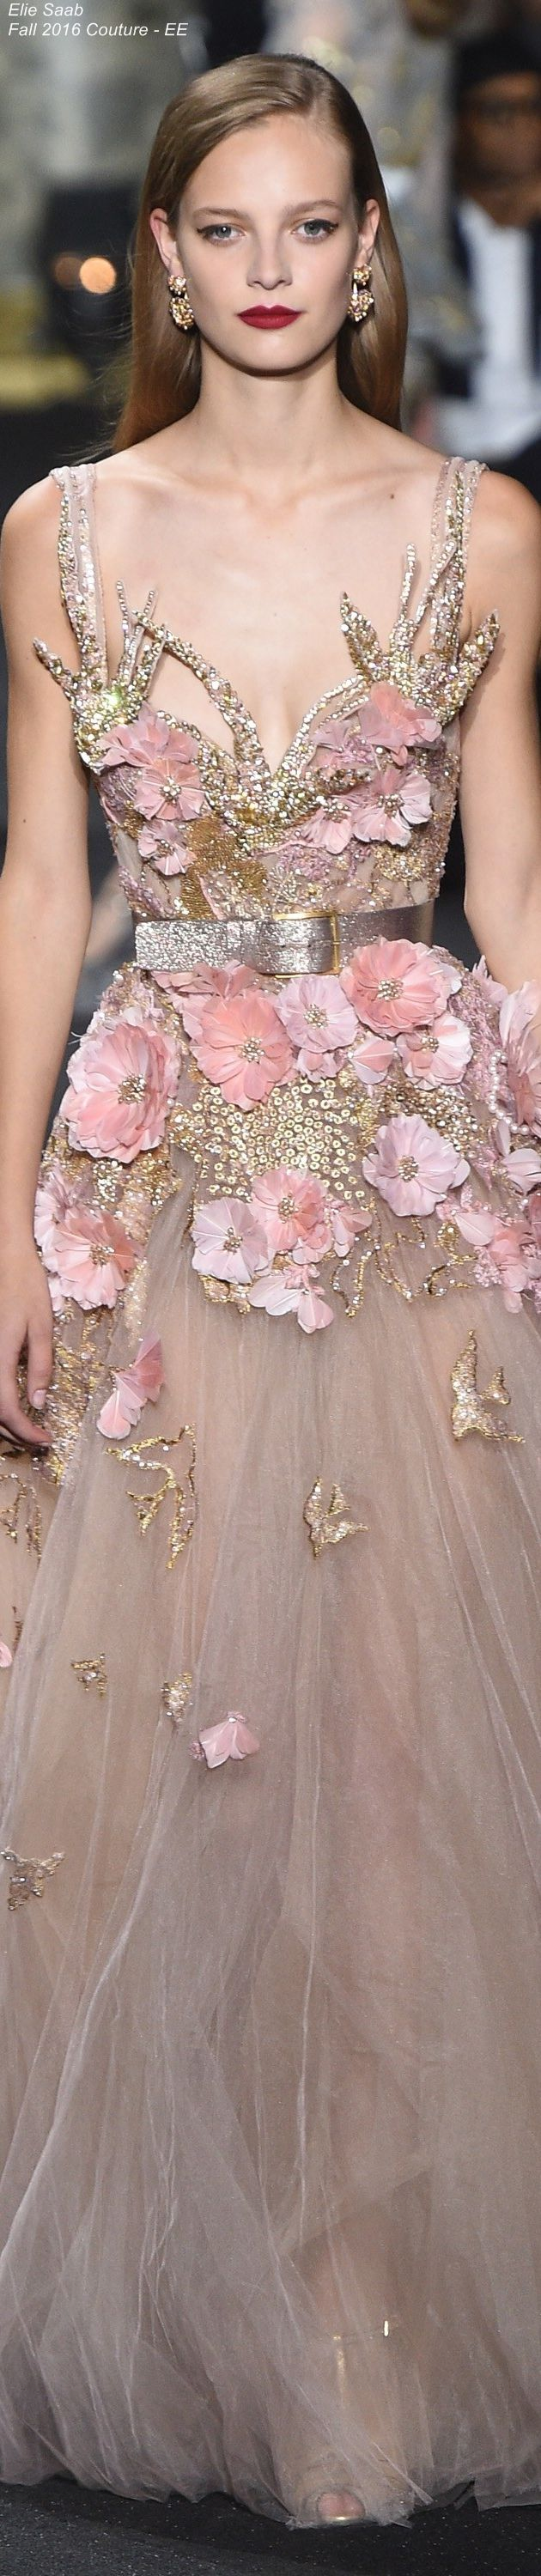 Elie Saab Fall 2016 Couture - EE